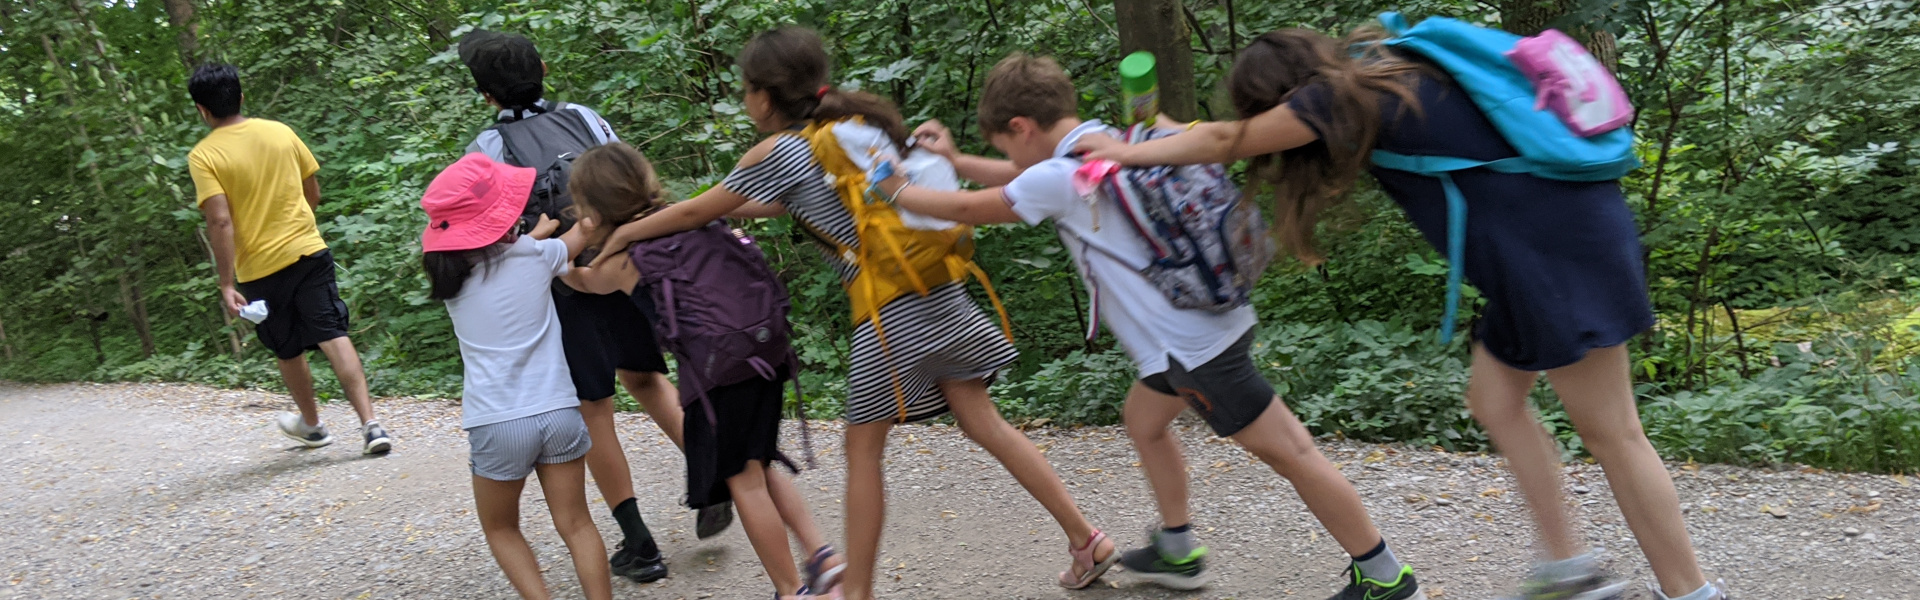 Summer German Classes for Children 7-9: Excursion to the Isar